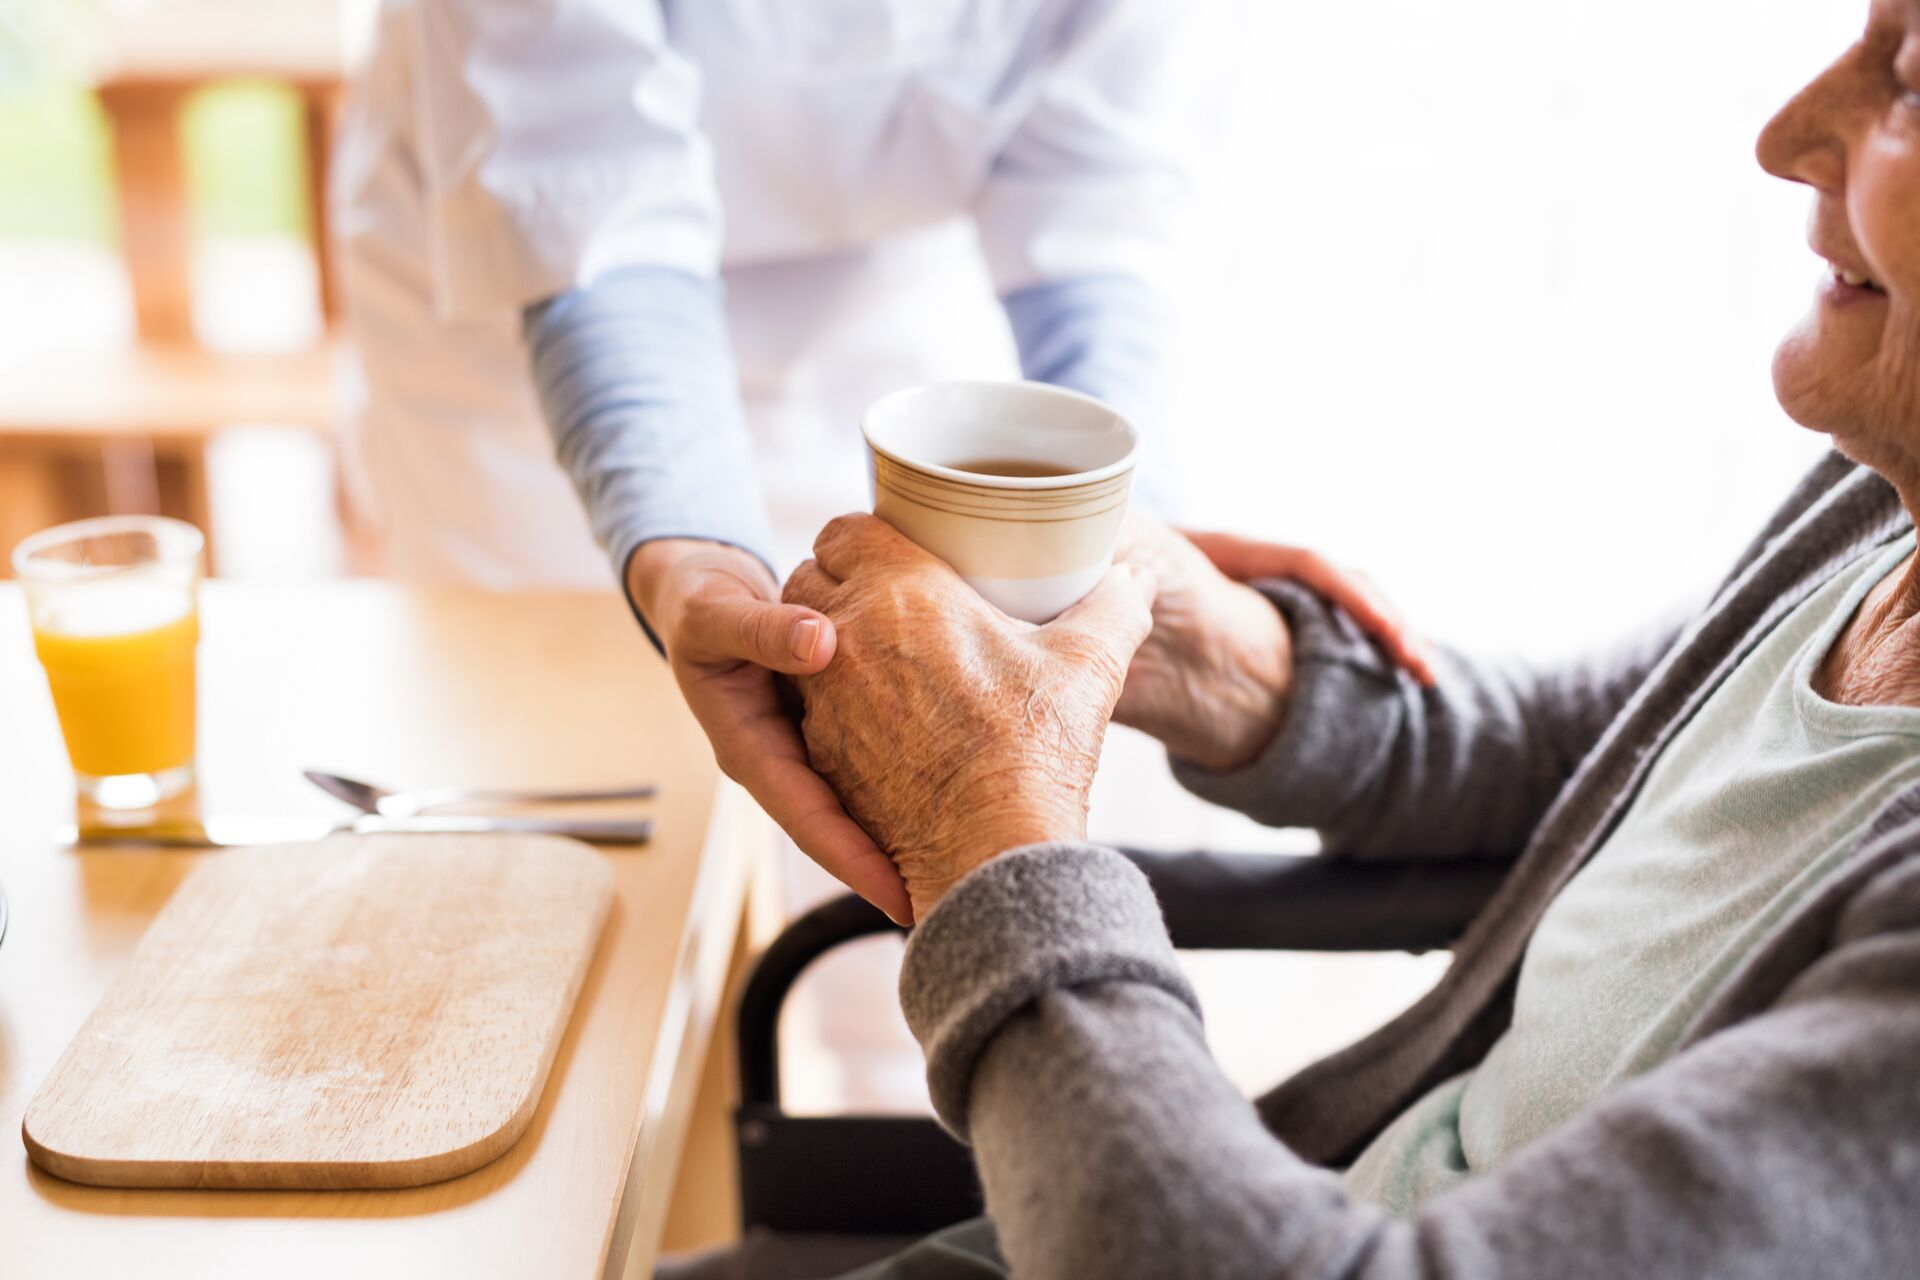 senior in assisted living getting help with holding a cup of coffee